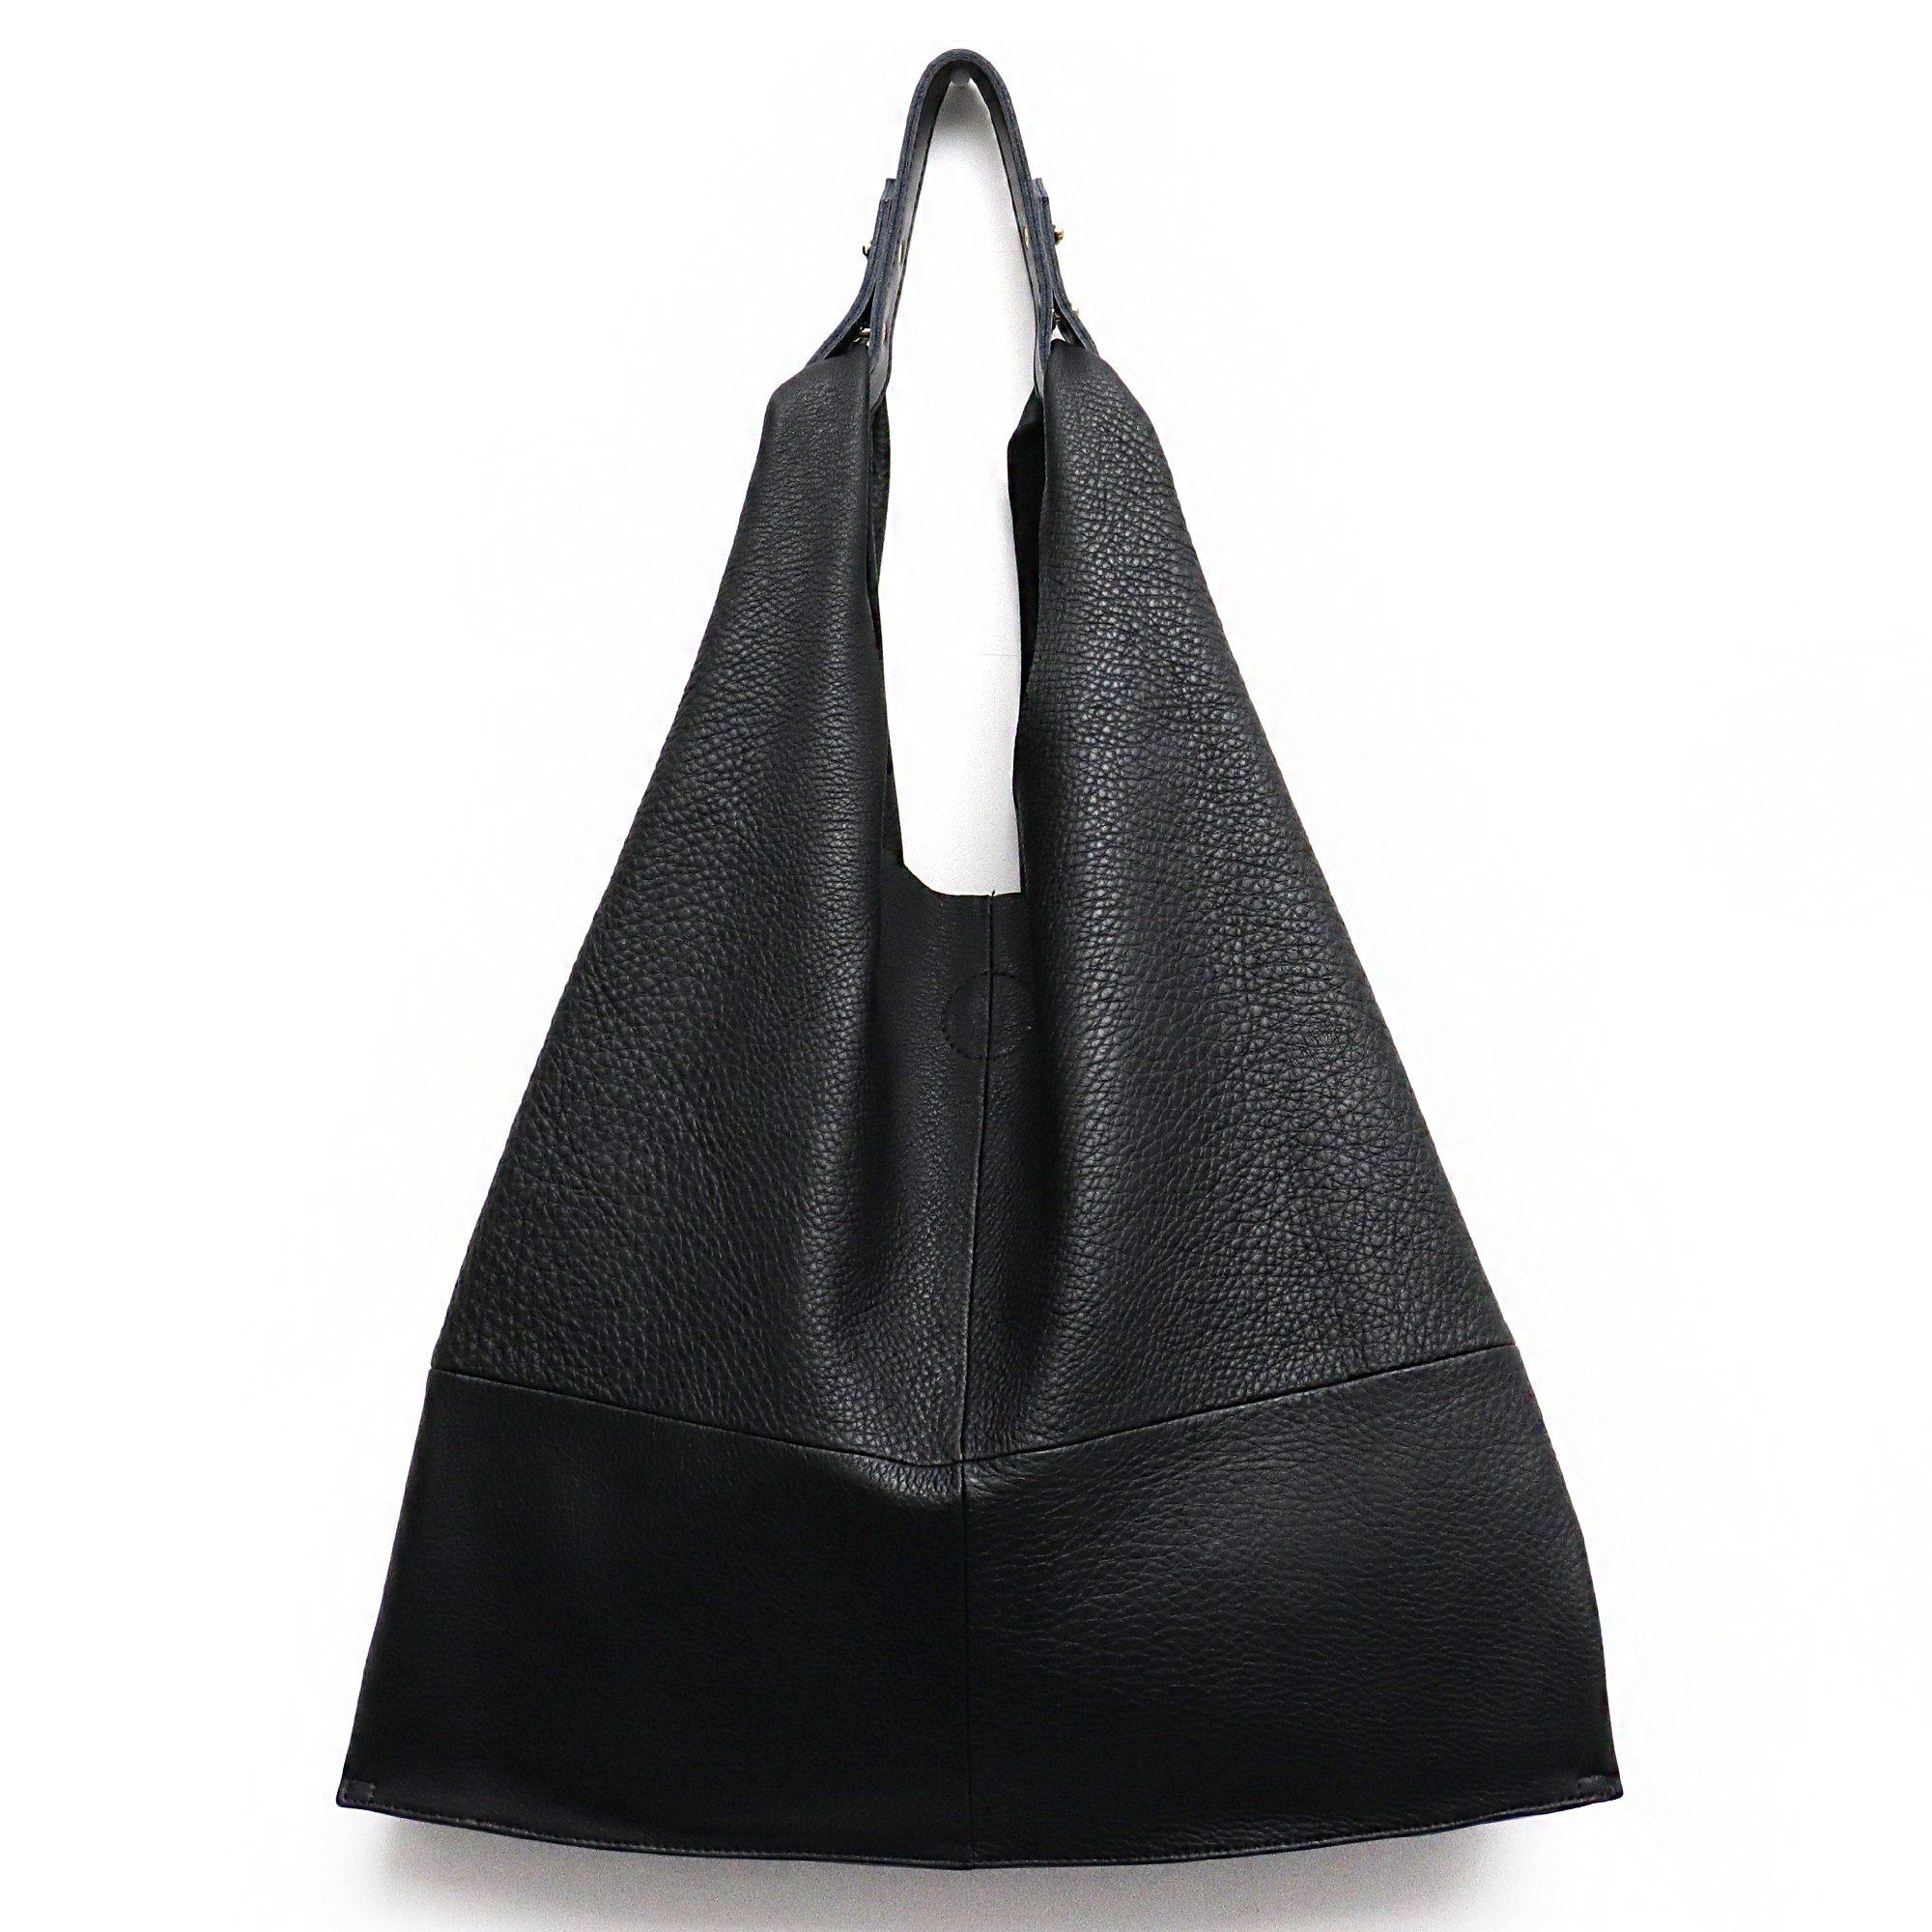 STEPHIECATHY Women's Handbag Genuine Leather Slouchy Hobo Shoulder Bag Large Casual Soft Handmade Tote Bags Ladies Vintage Bucket Snap Shopping Bag with Zipper Cellphone Liner Bag Inside (Black)